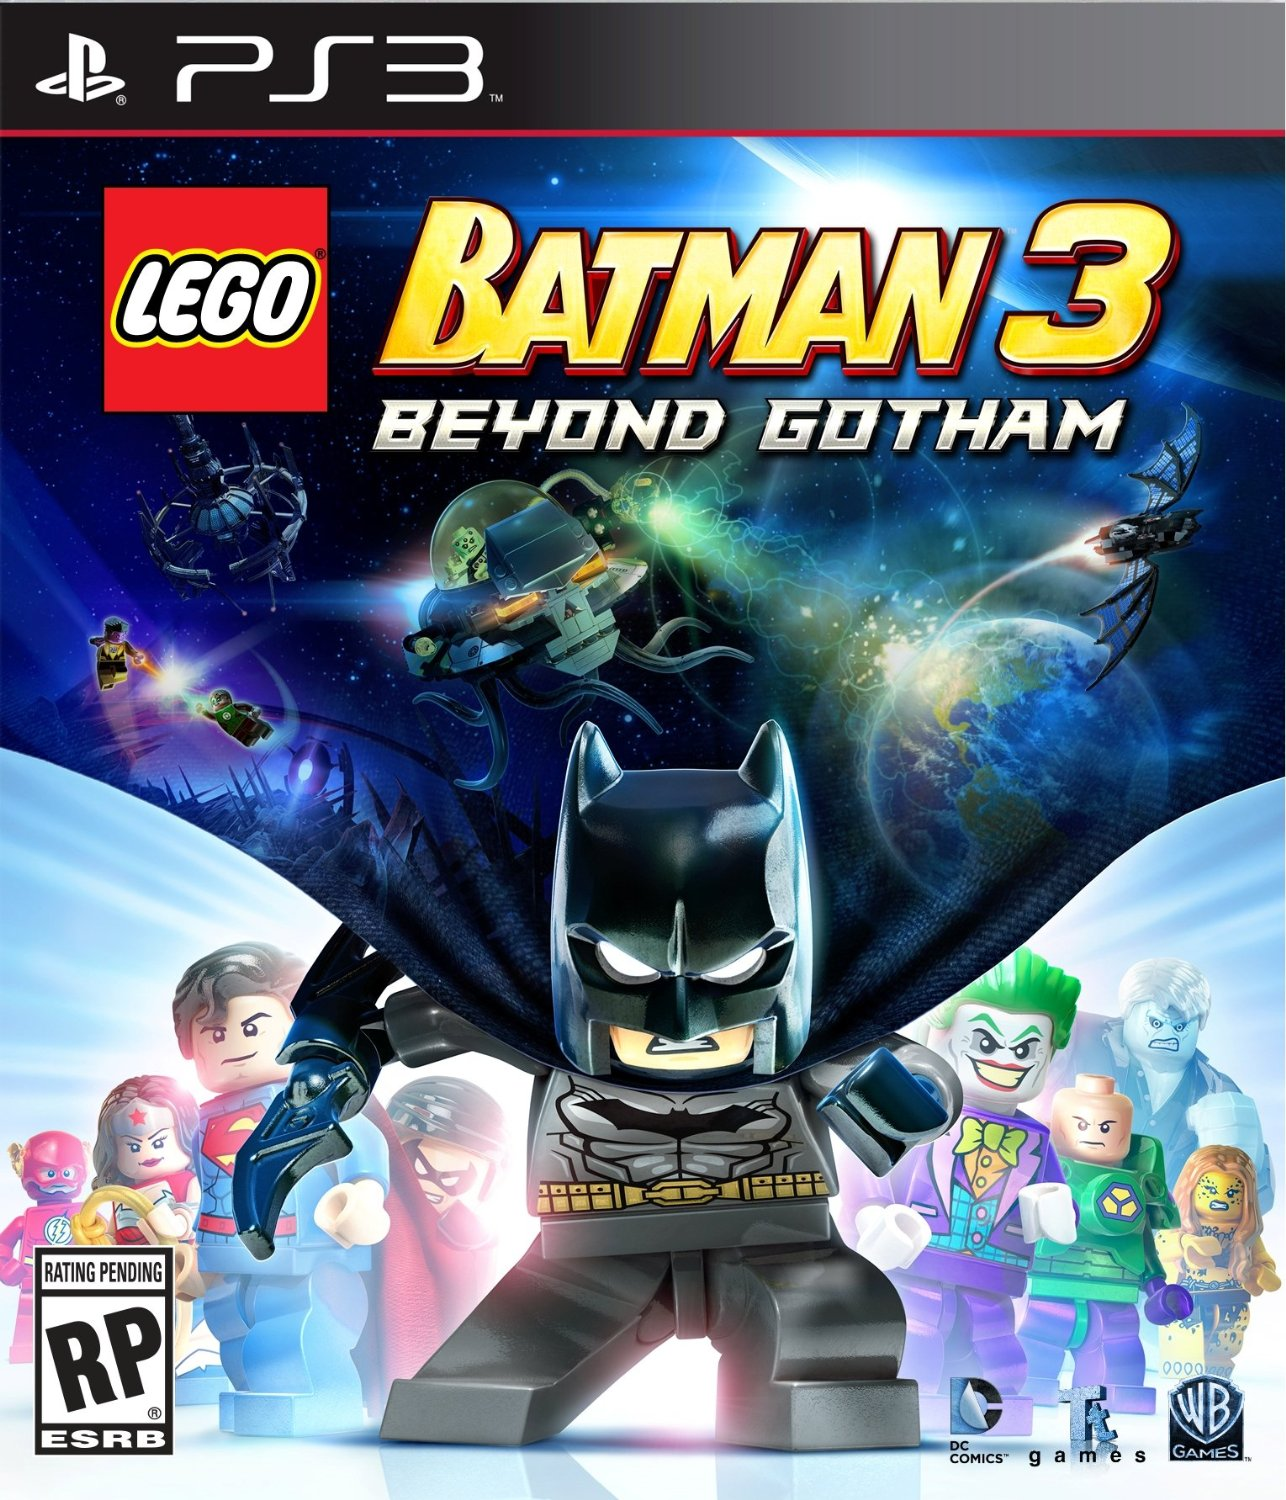 PS3 - LEGO Batman 3: Beyond Gotham